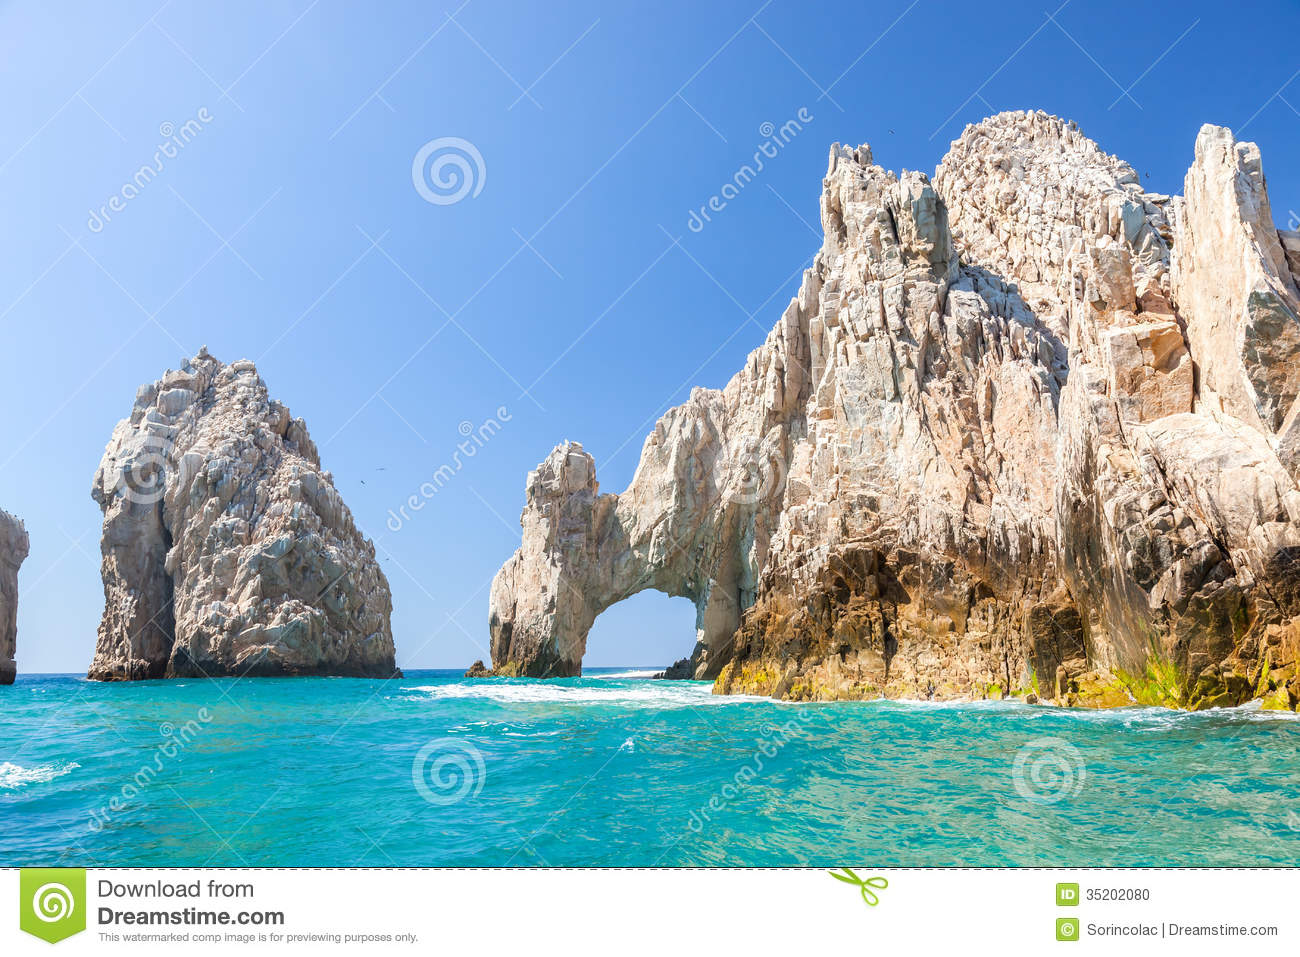 Cabo San Lucas clipart #18, Download drawings